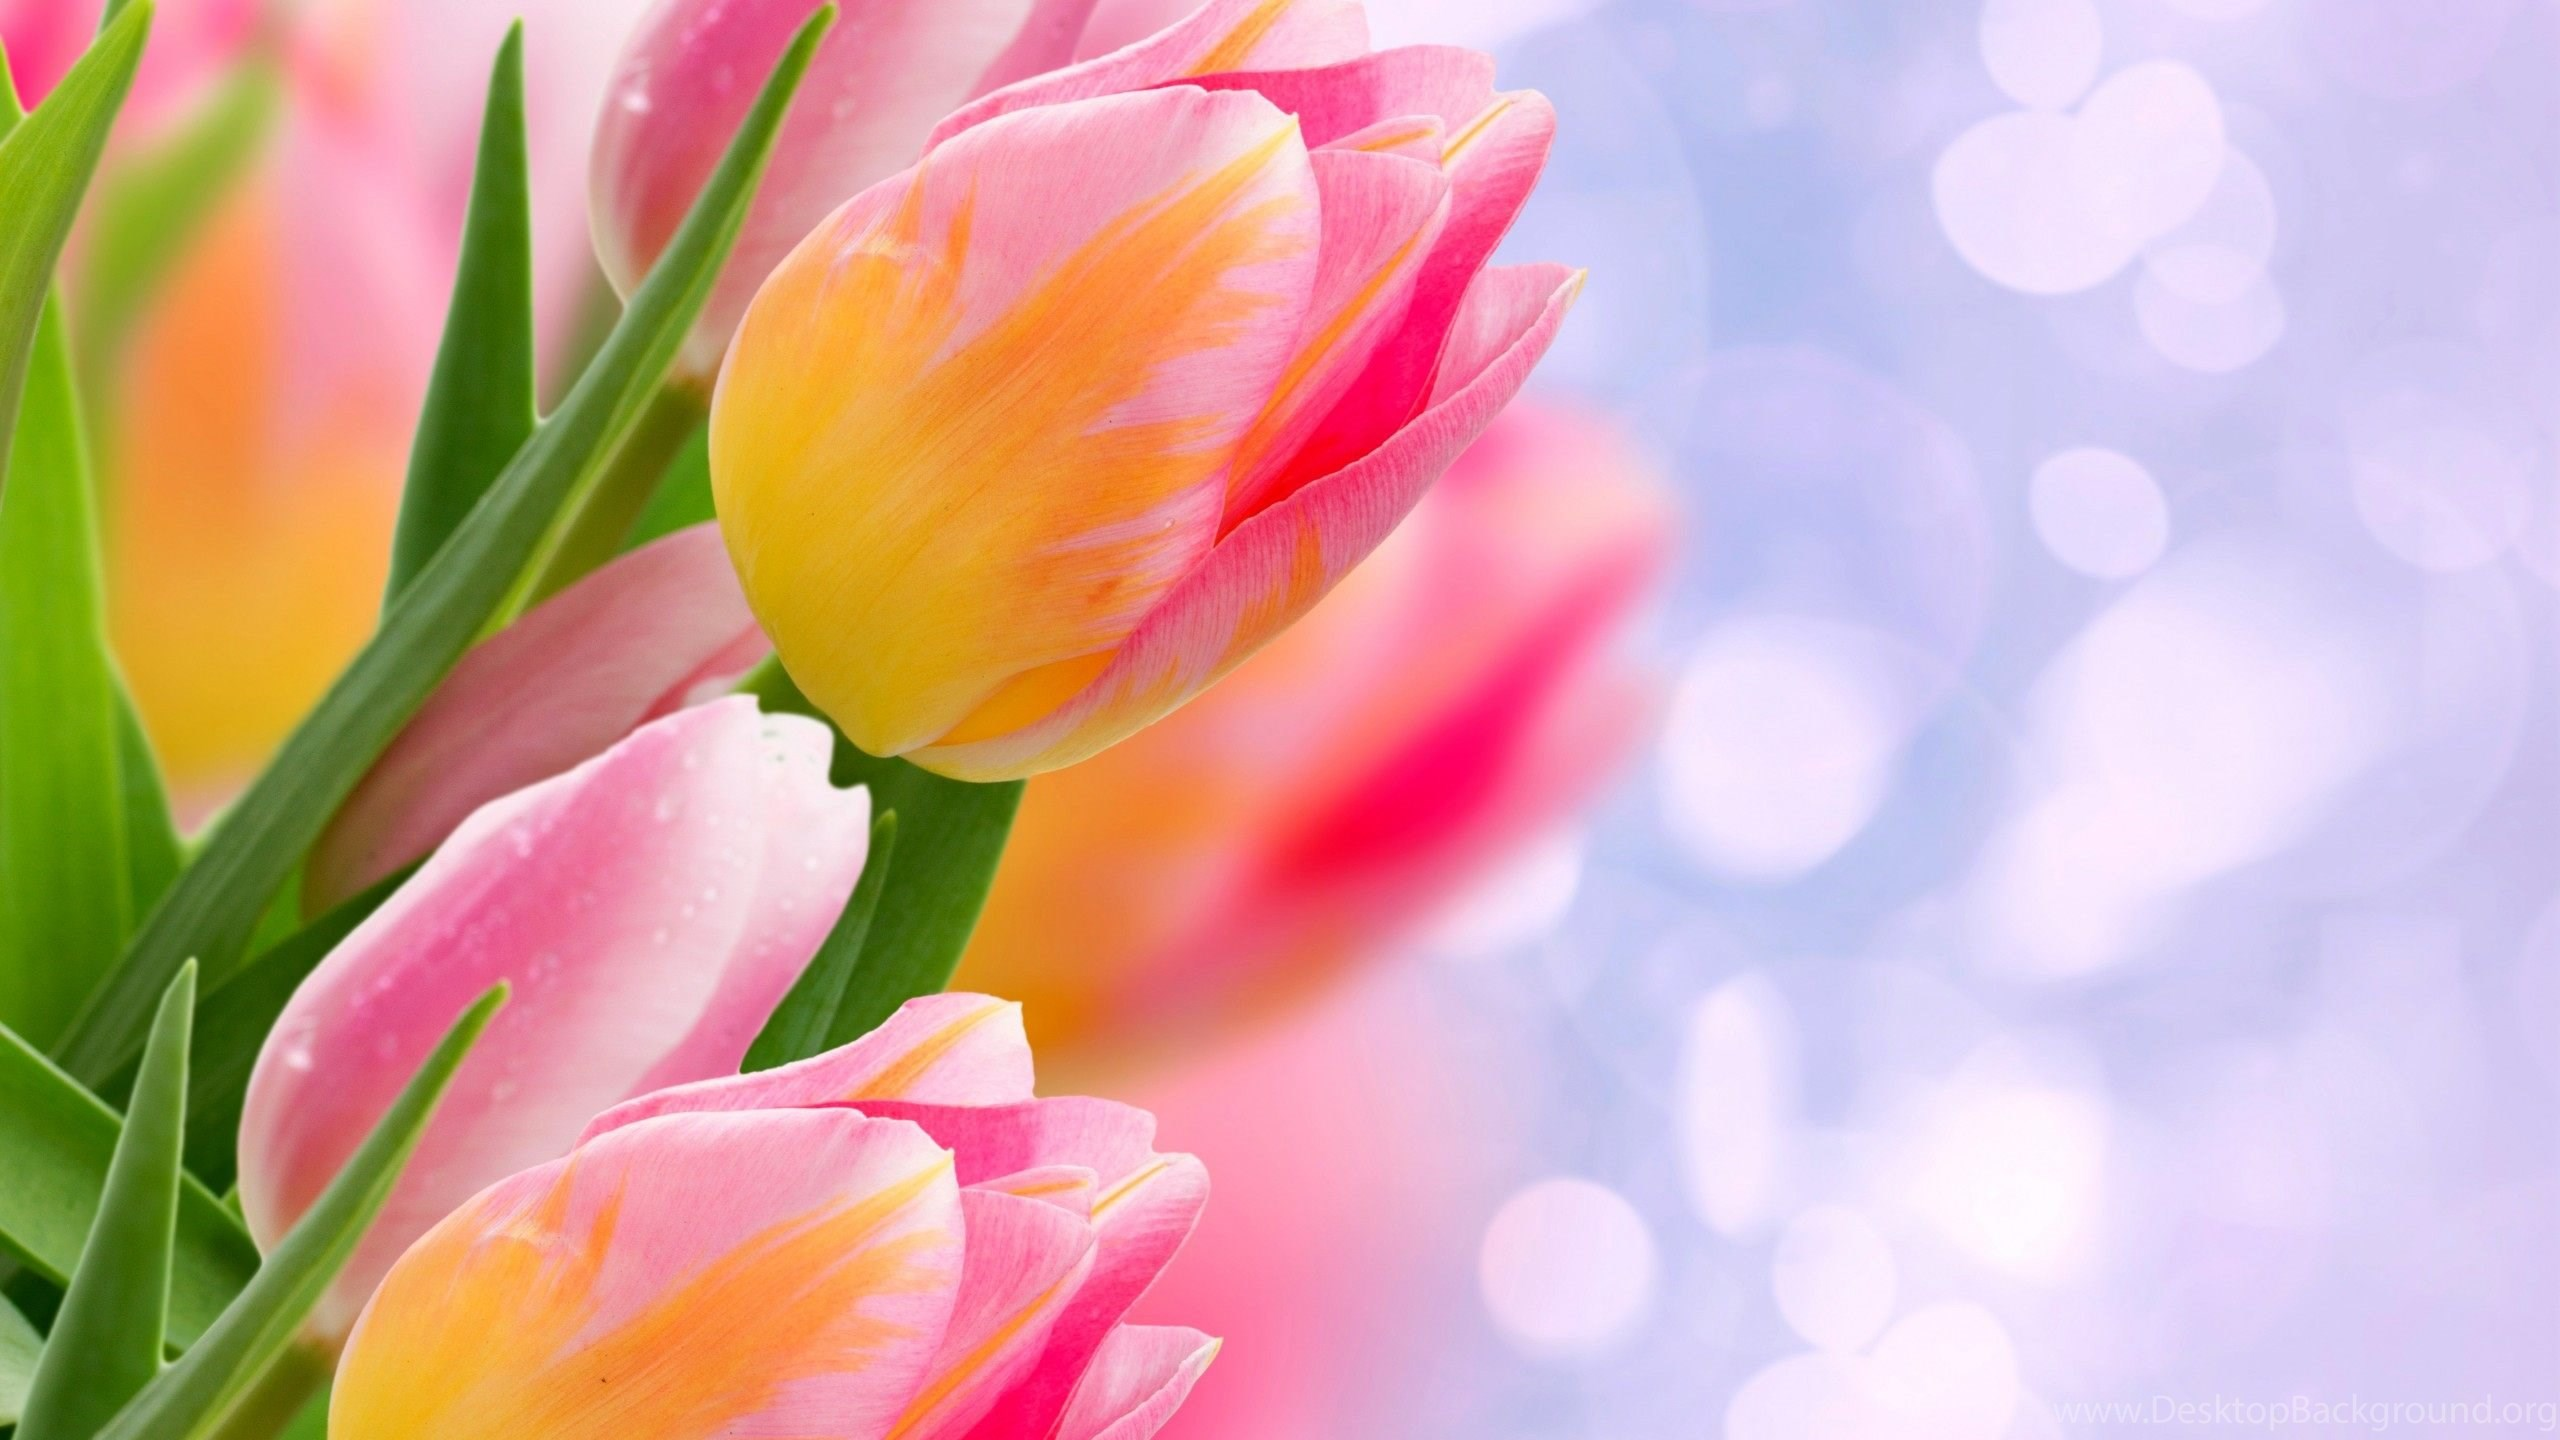 flower wallpapers new and best collection free download in hd